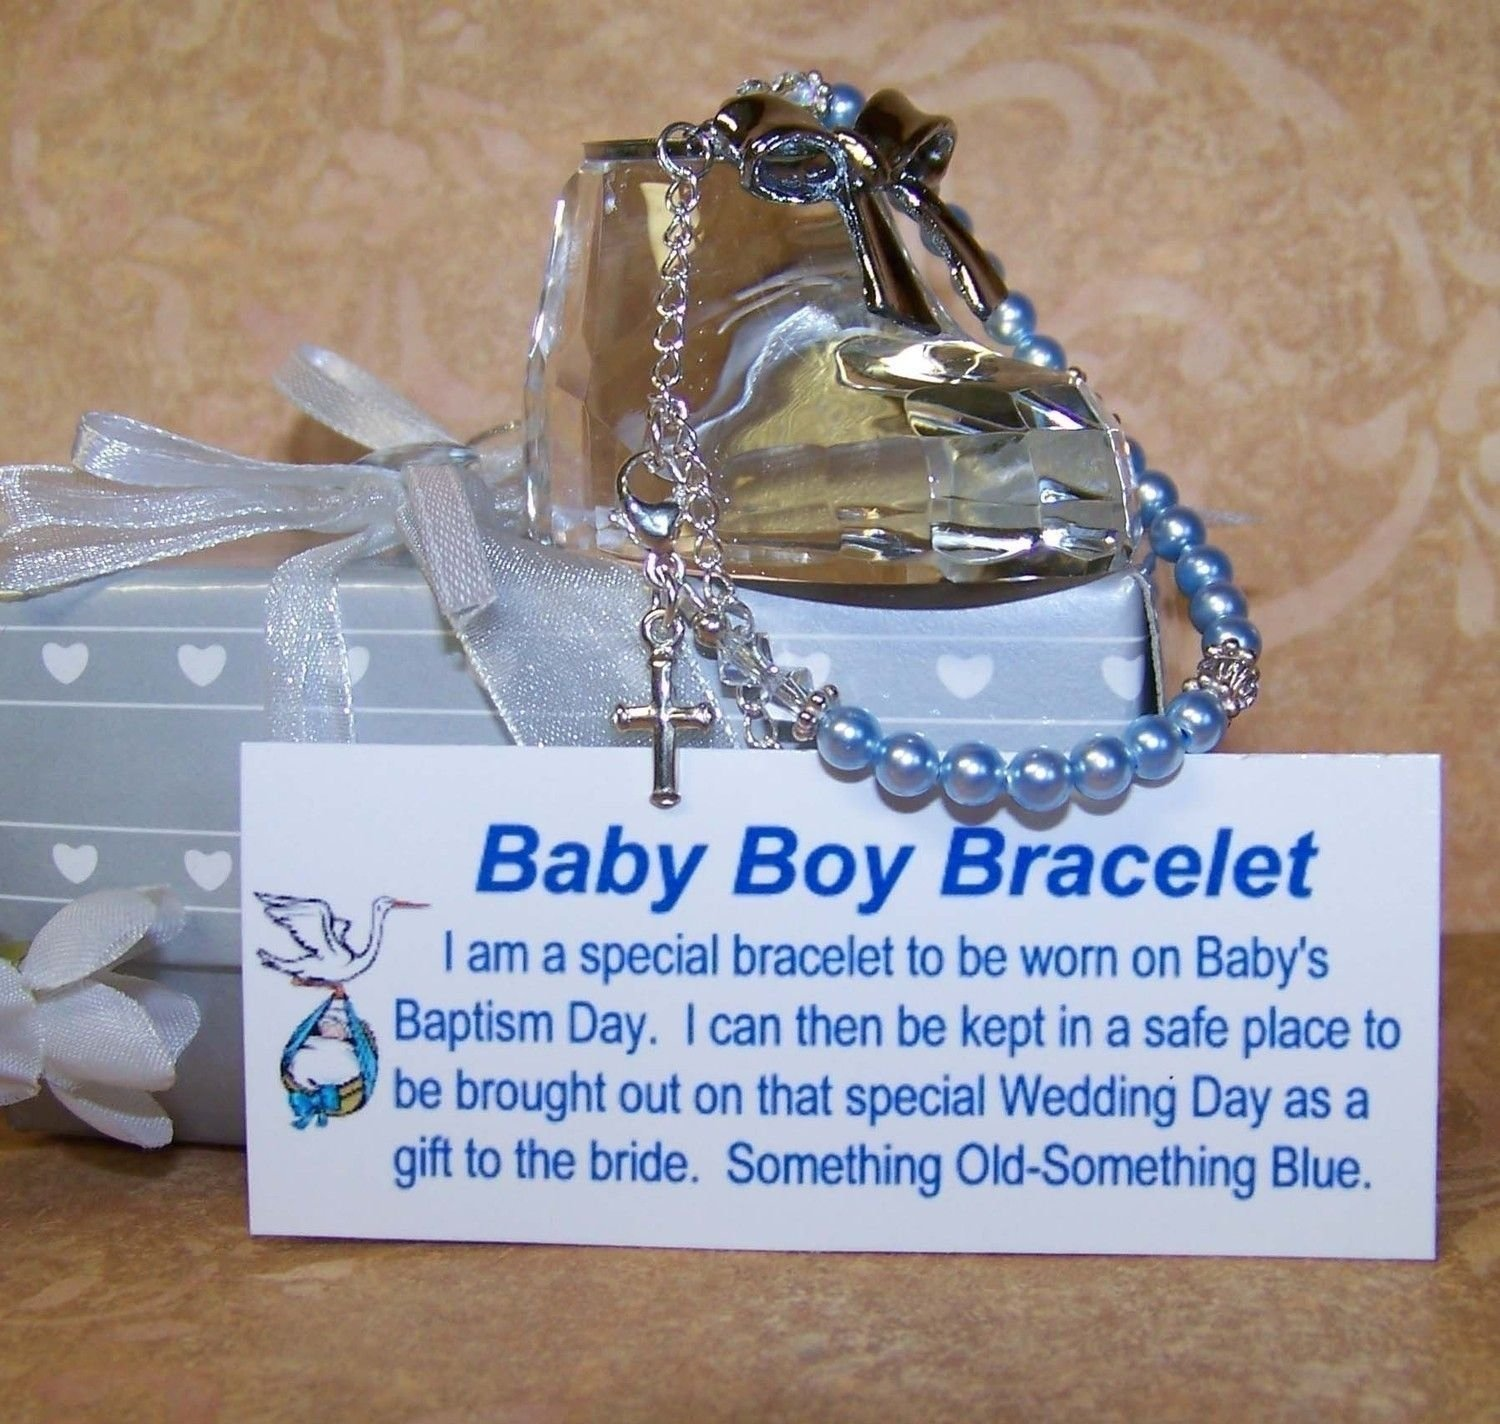 10 Elegant Baby Boy Baptism Gift Ideas baby girl baptism bracelet baby to bride with attached extender 2020